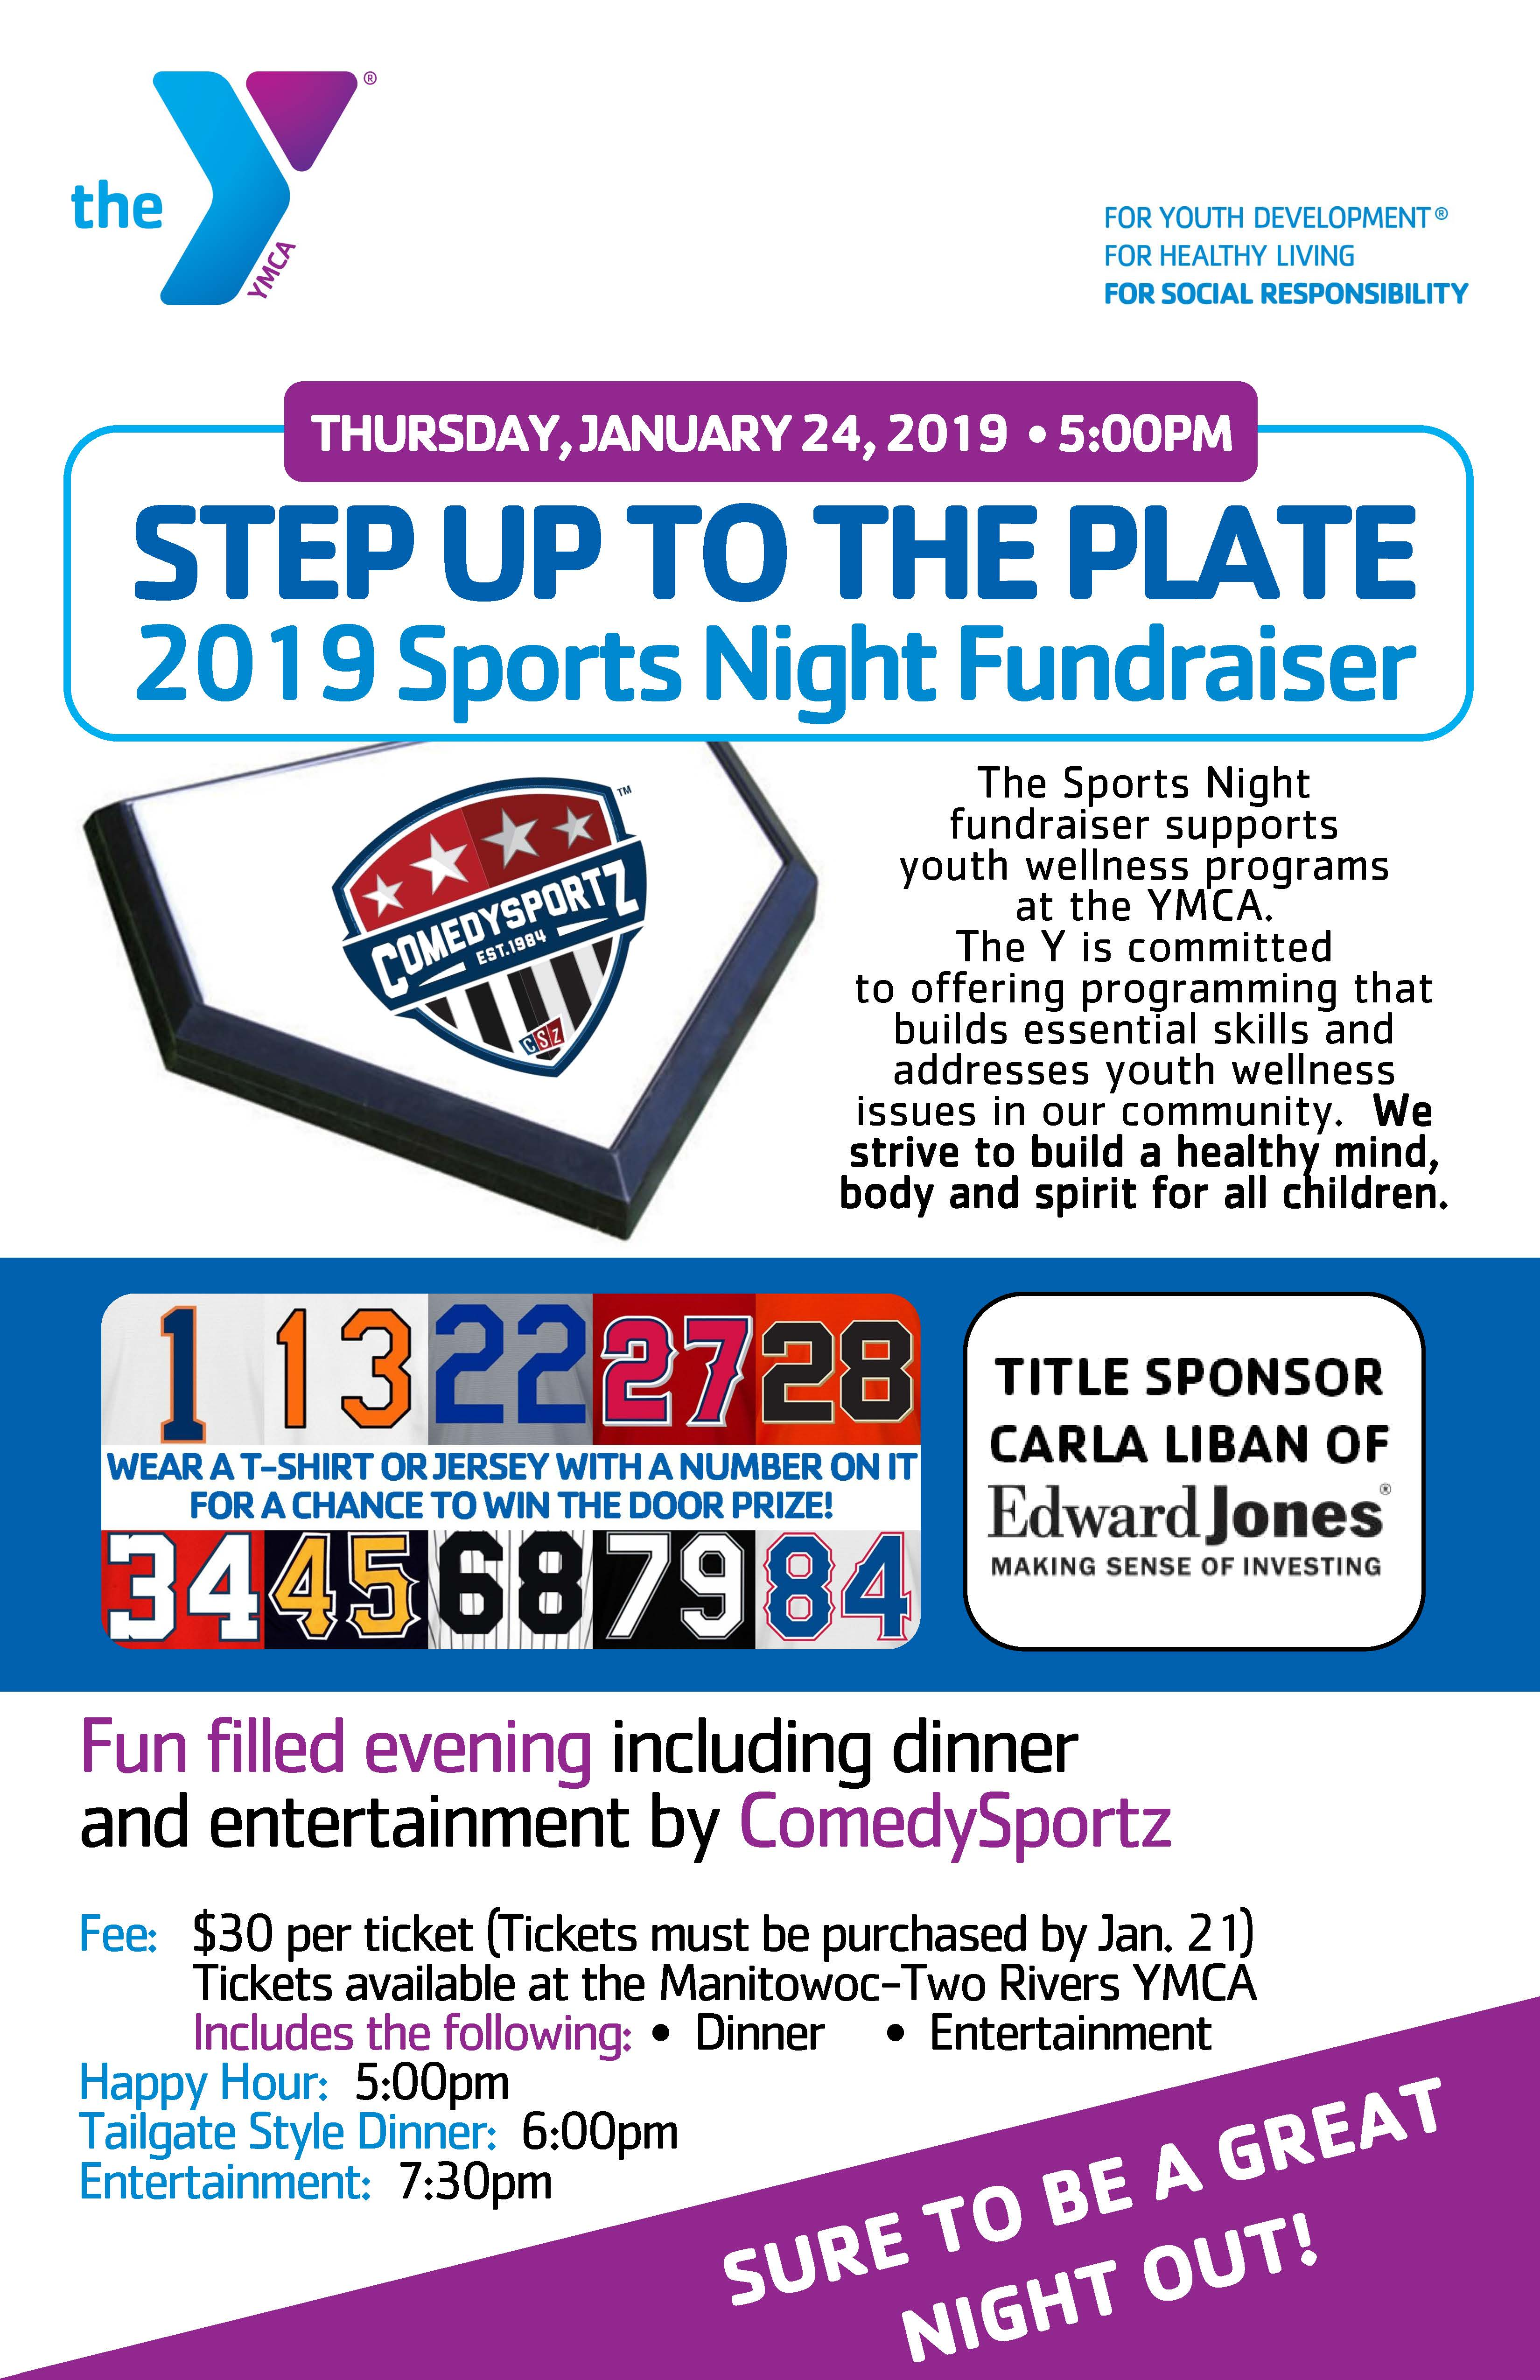 http://mtrymca.org/sites/mtrymca.org/assets/images/campaign/Sports-Night-2019-Poster.jpg